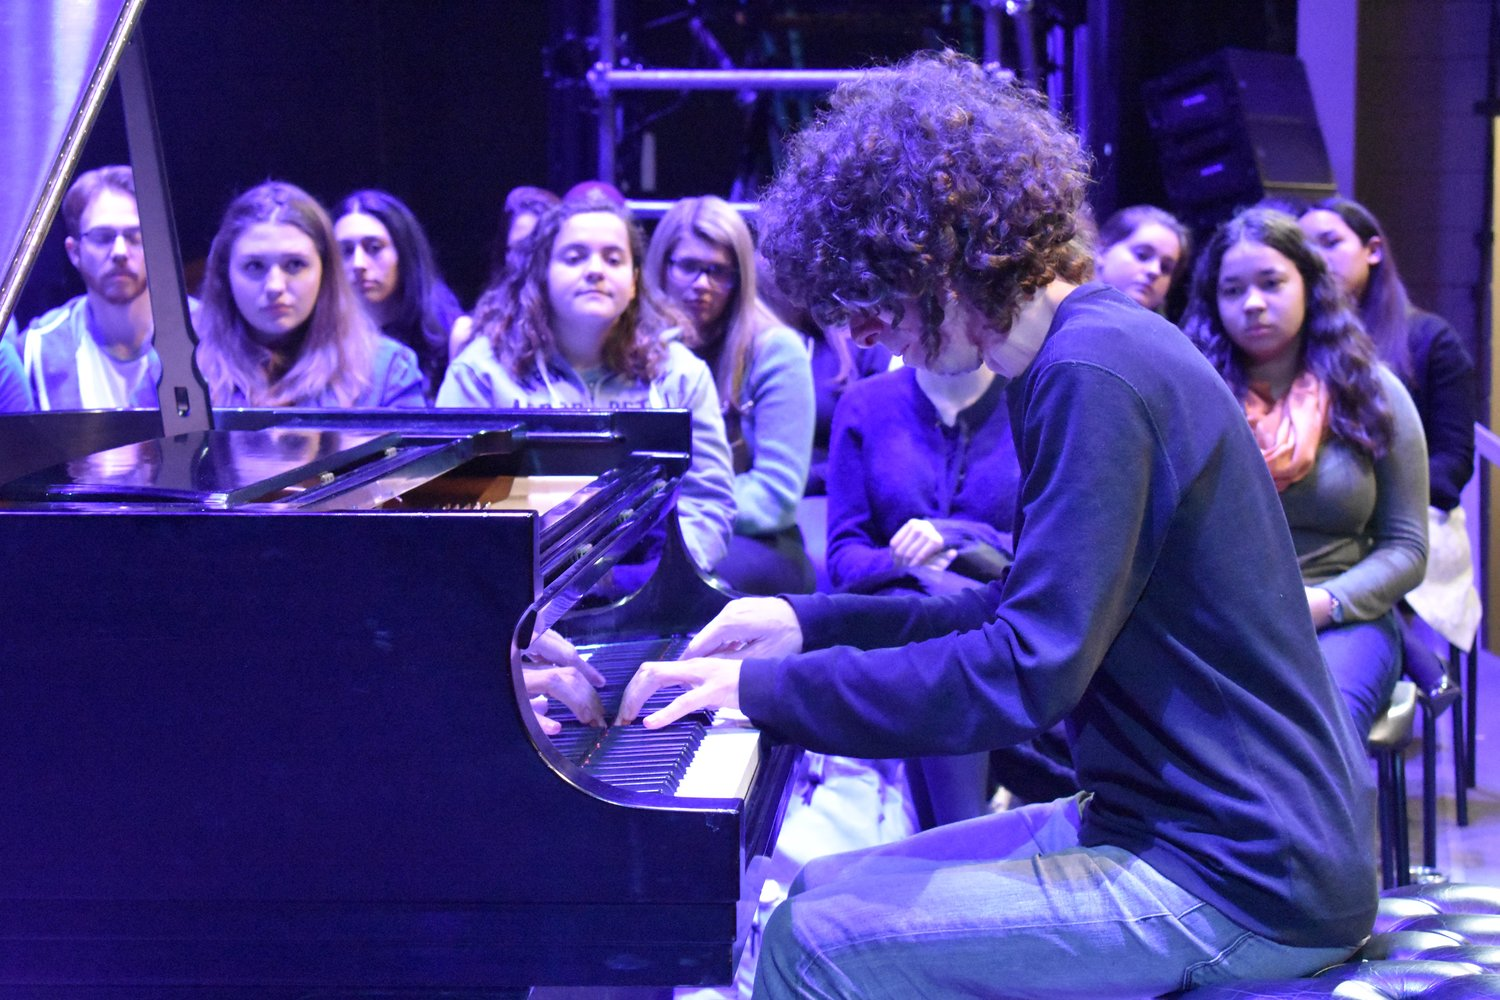 Professional pianist Julian Gargiulo stopped by Molloy College's Madison Theatre on March 7 to speak to students before his evening performance there.